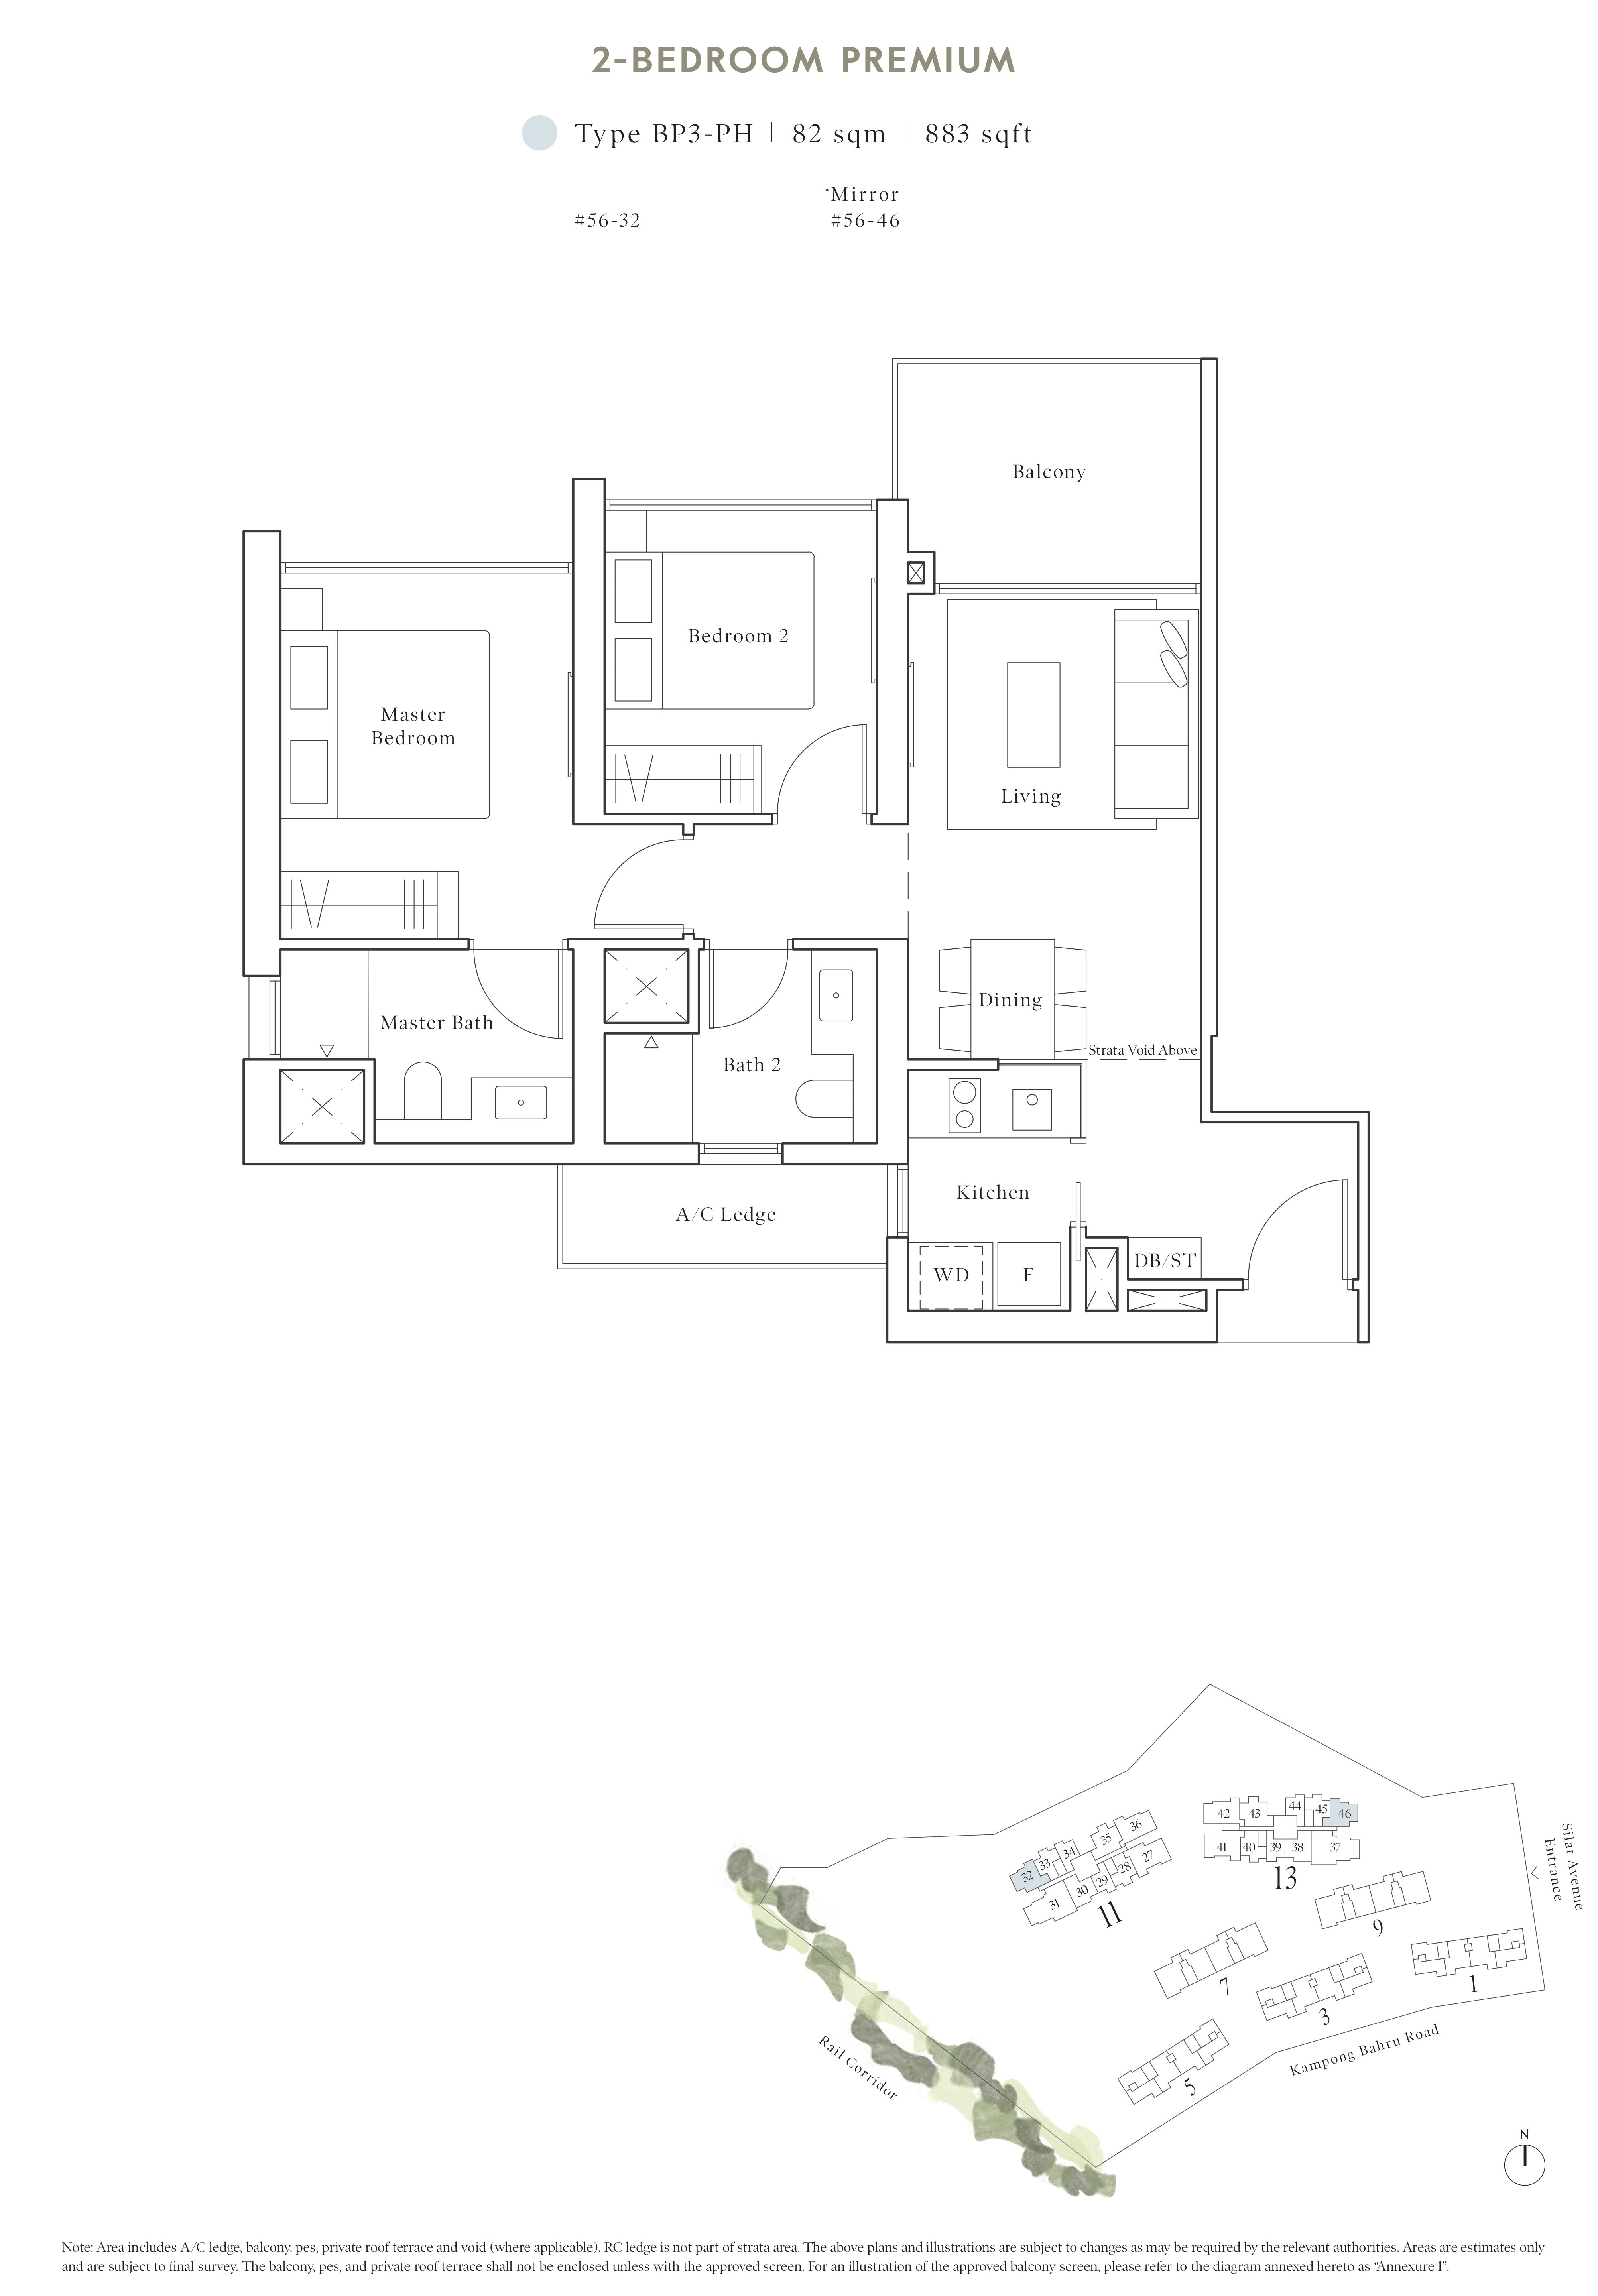 Avenue South Residence 南峰雅苑 peak floor plan 2-bedroom penthouse bp3-ph